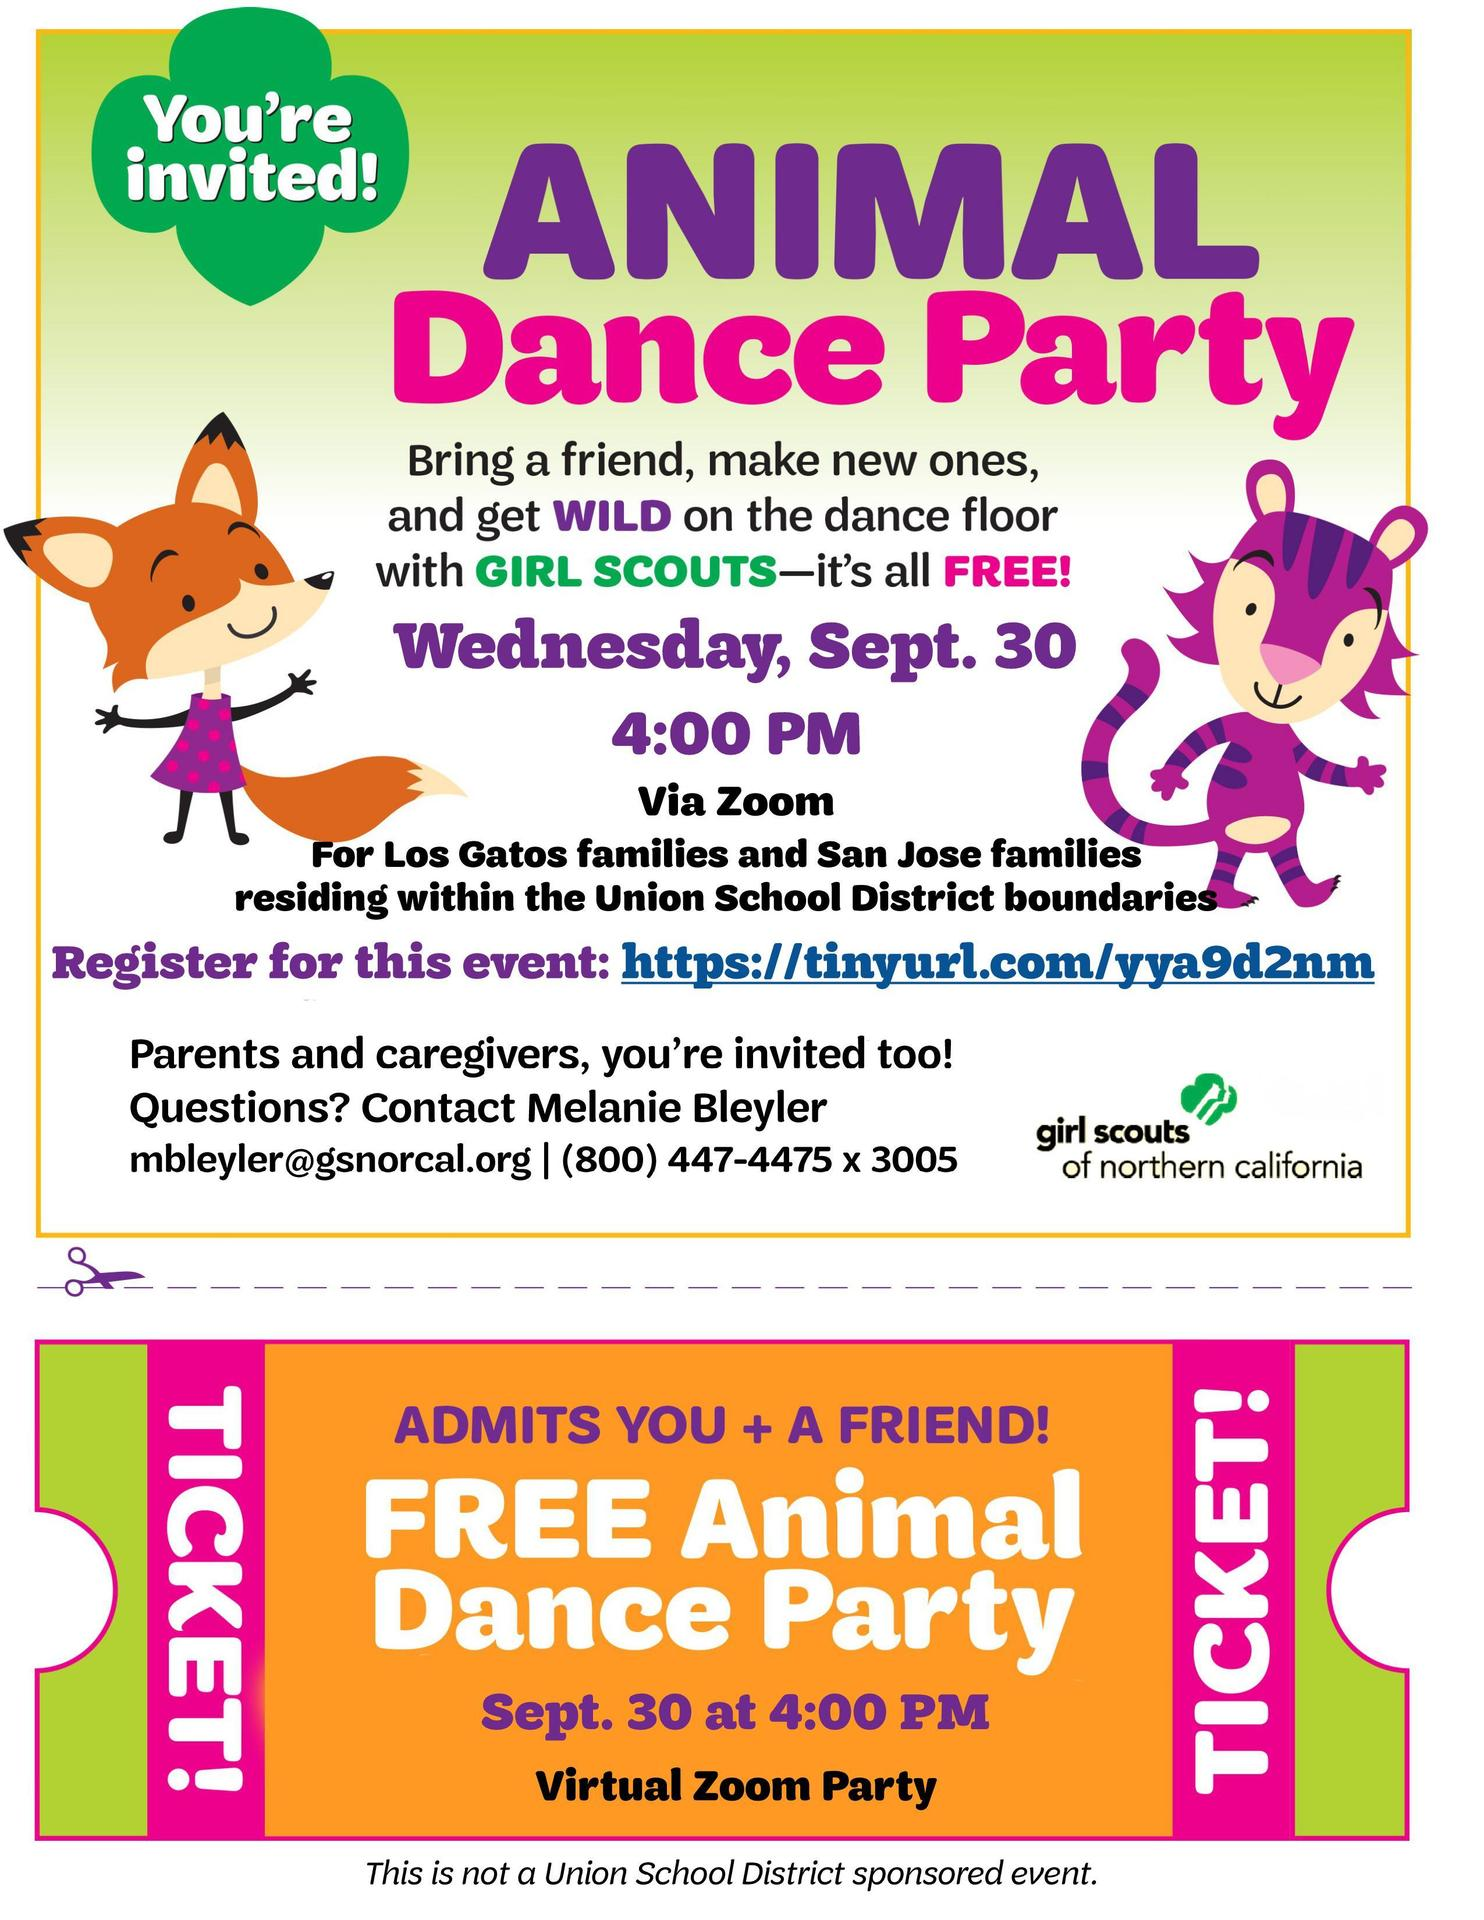 Girl Scouts_Animal Dance Party